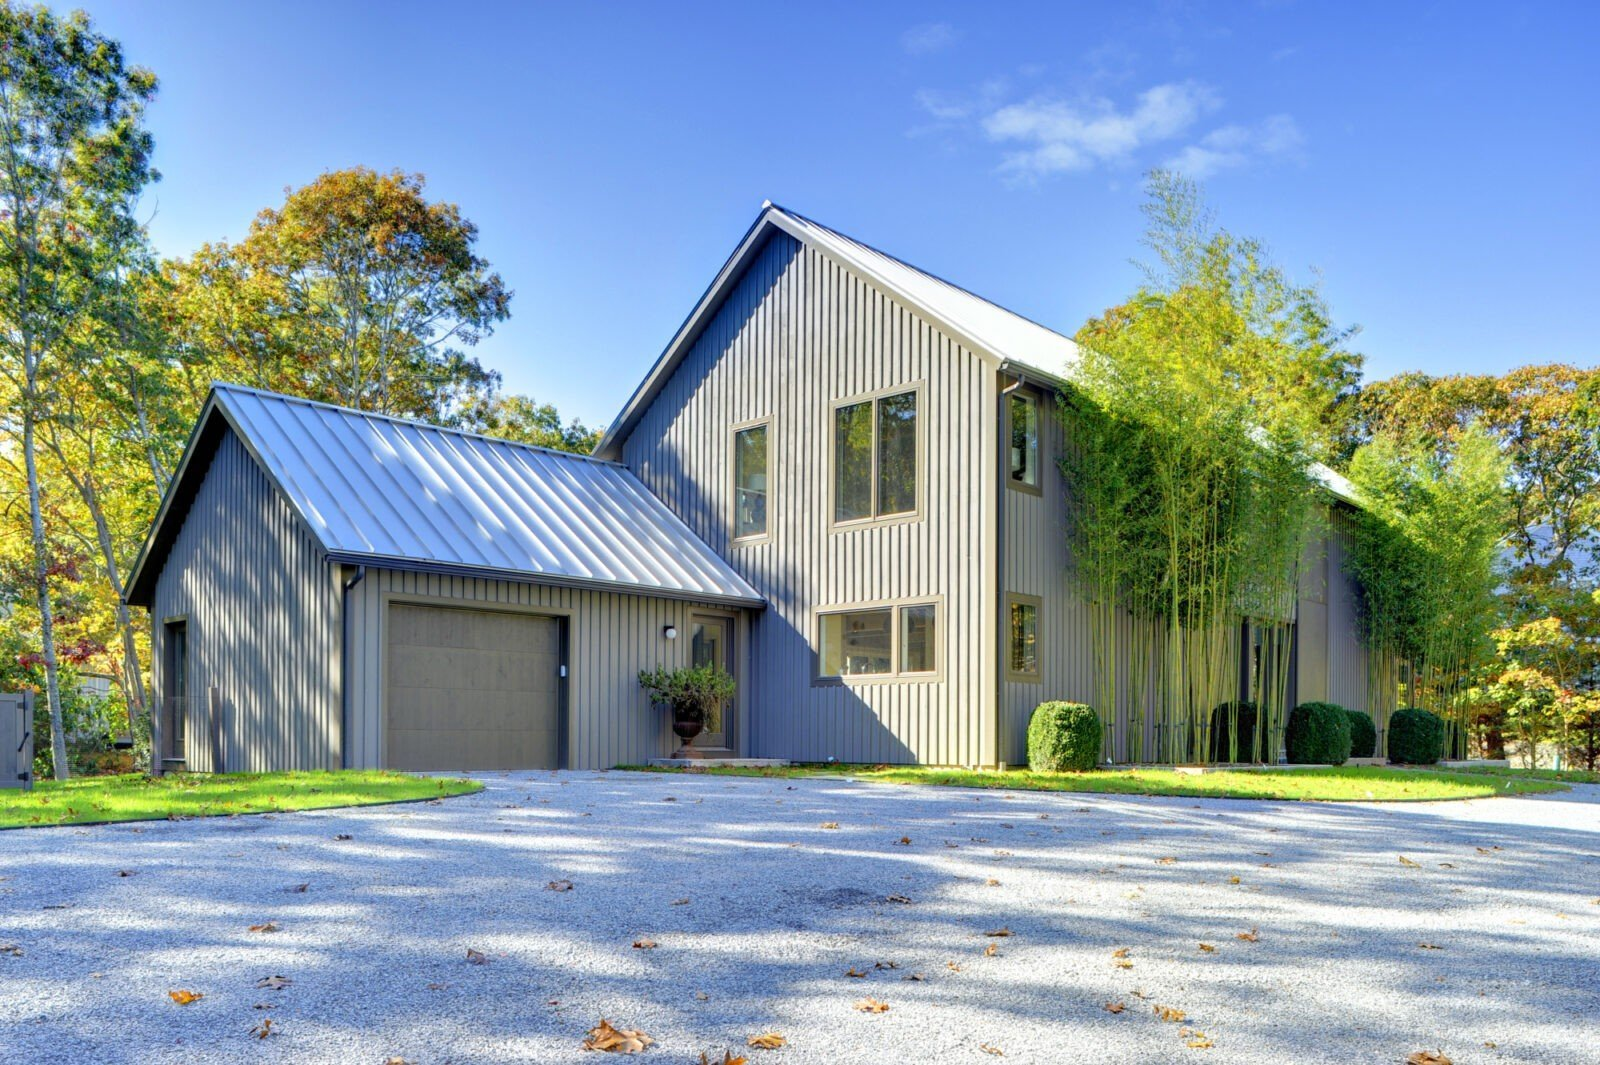 Oyster Shores modern barn home - PHOTOGRAPHY BY CHRIS FOSTER